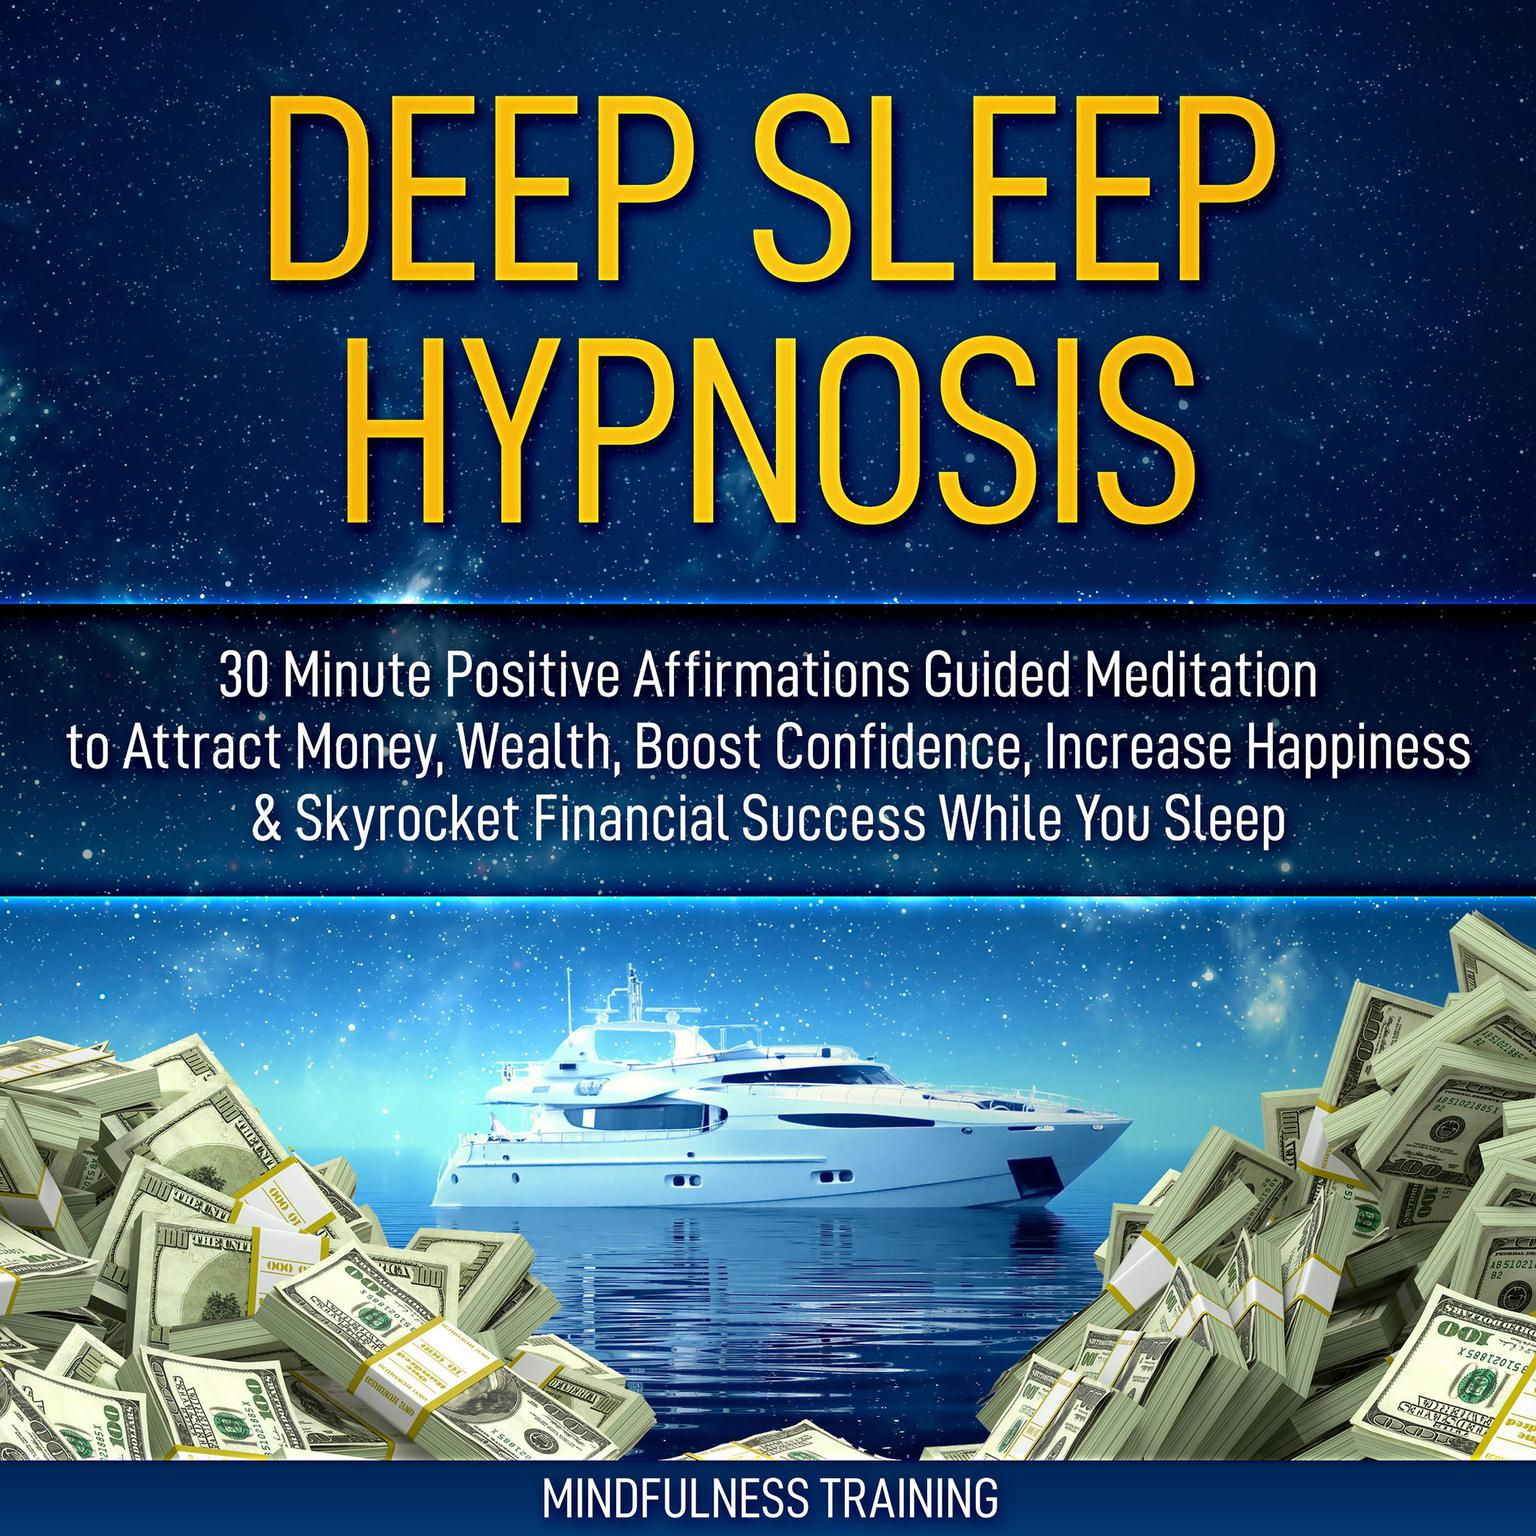 Deep Sleep Hypnosis: 30 Minute Positive Affirmations Guided Meditation to  Attract Money, Wealth, Boost Confidence, Increase Happiness & Skyrocket